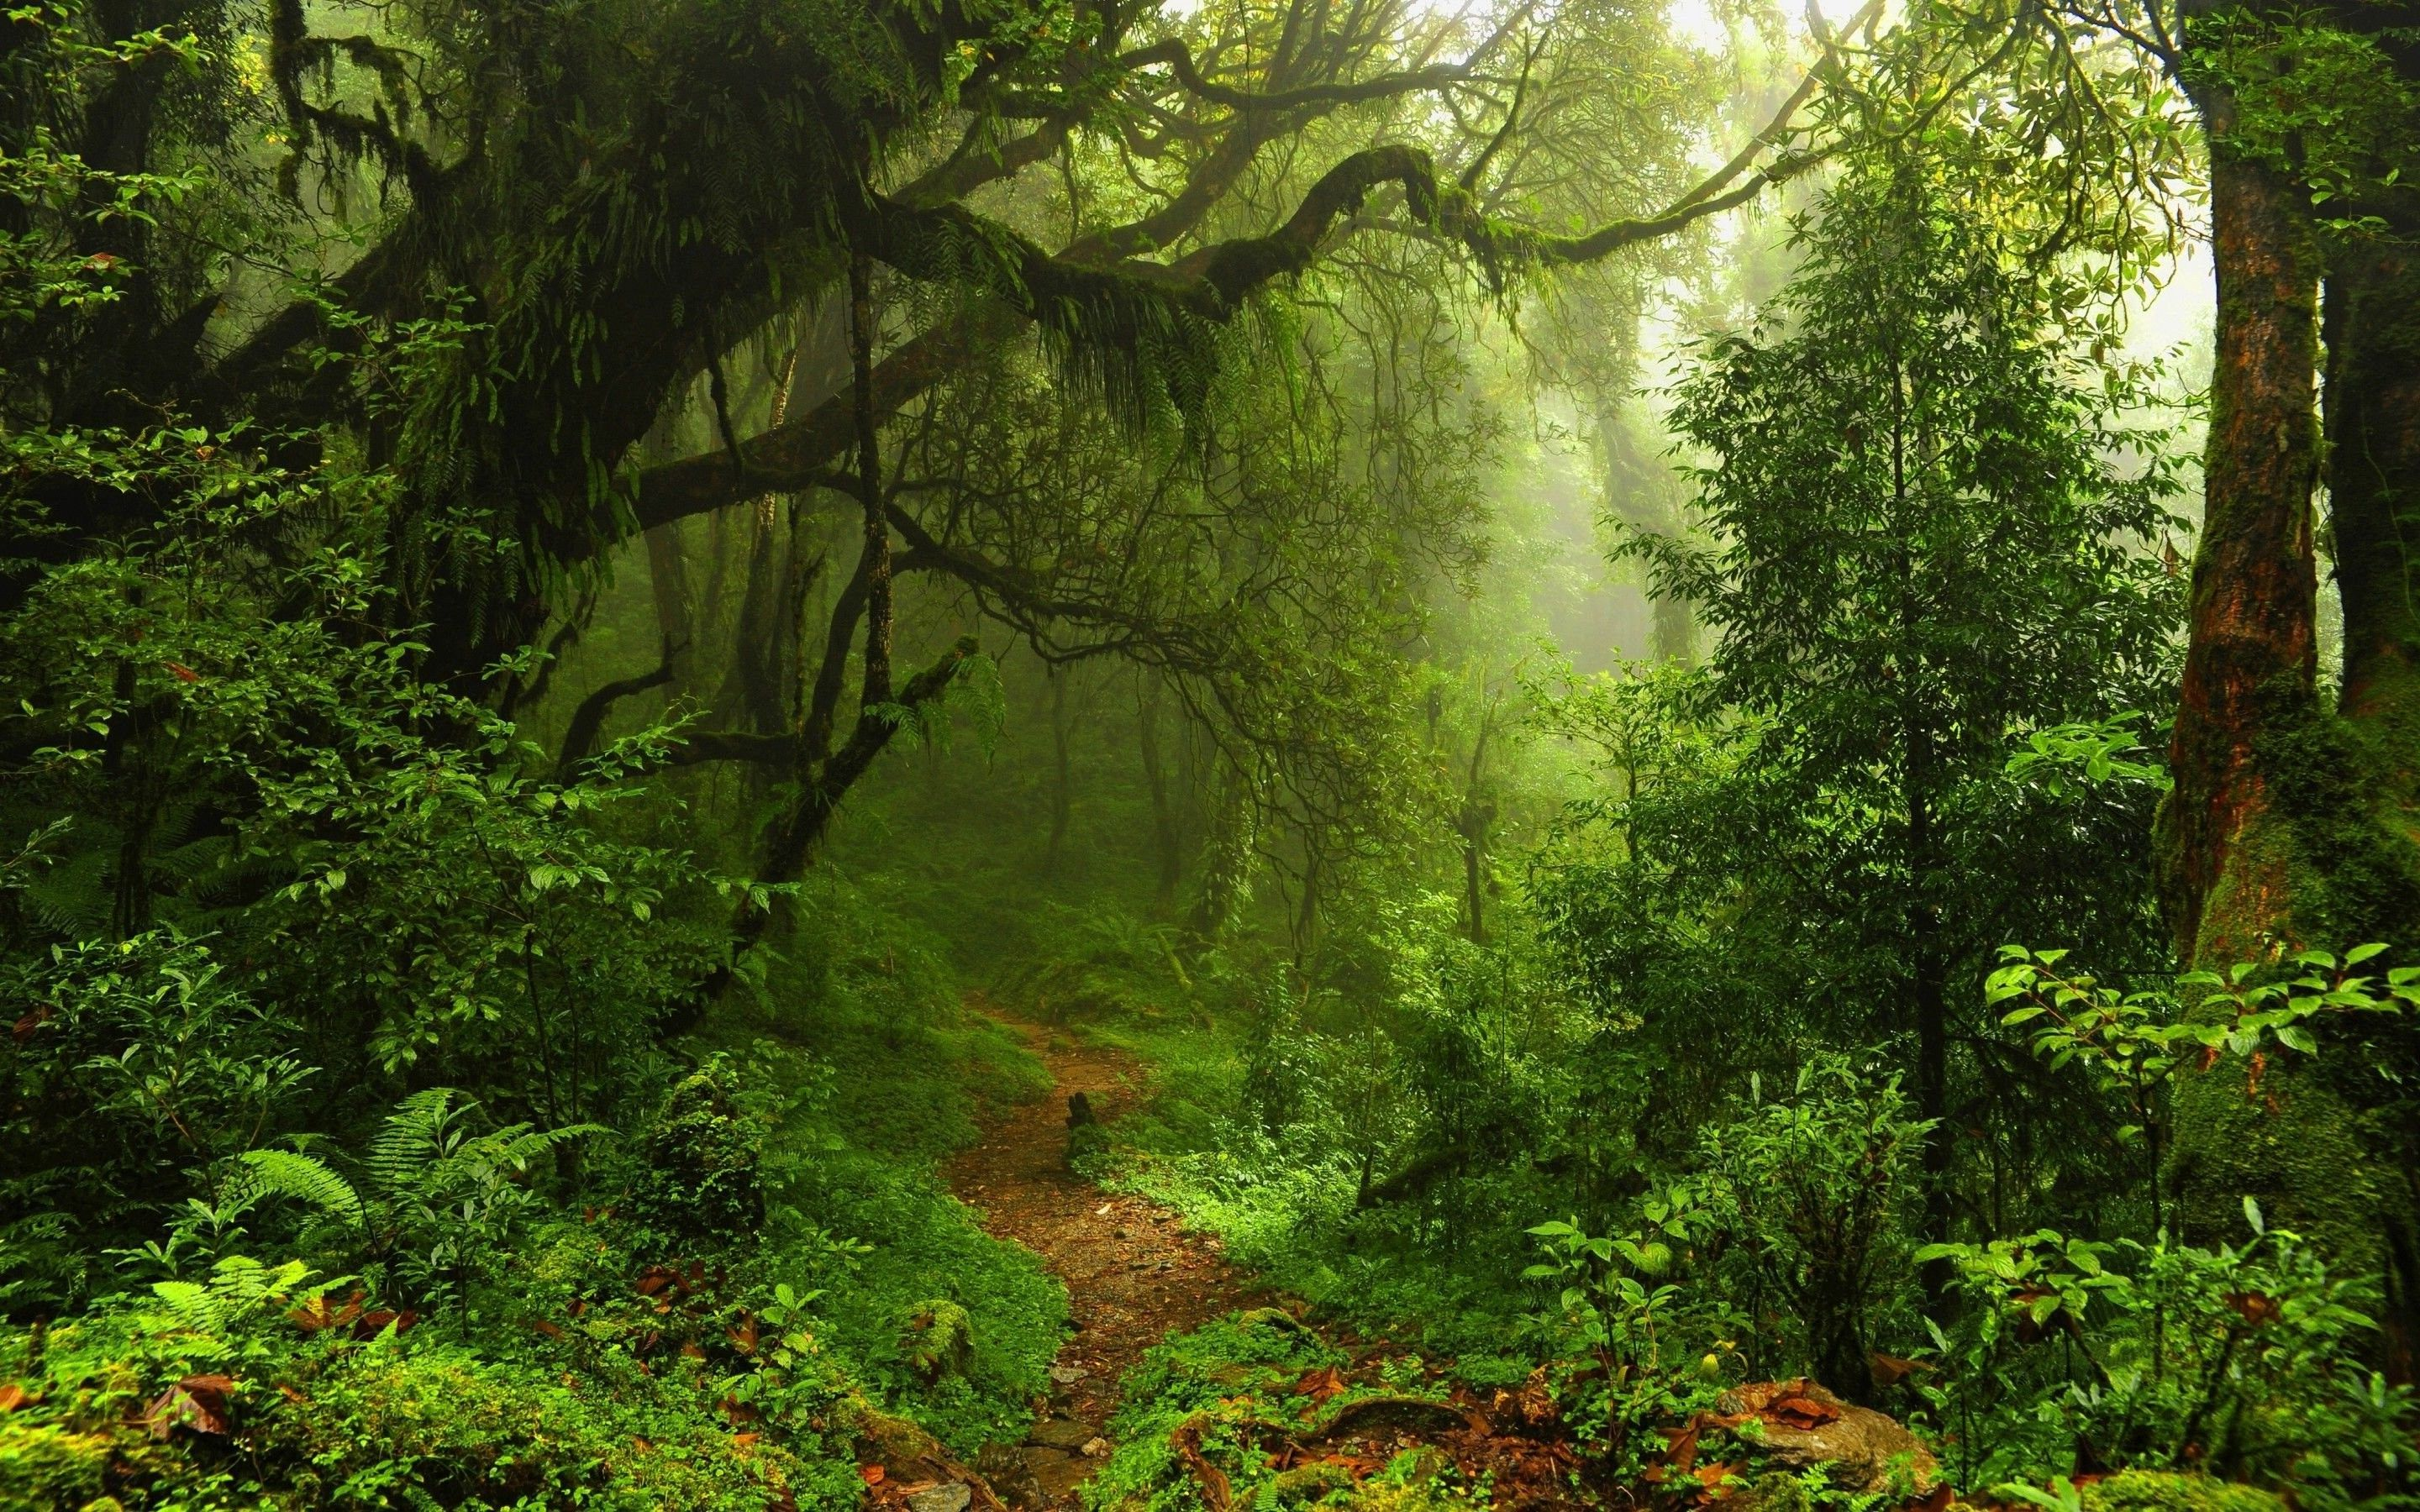 nature, Trees, Forest, Leaves, Lianas, Mist, Moss, Path